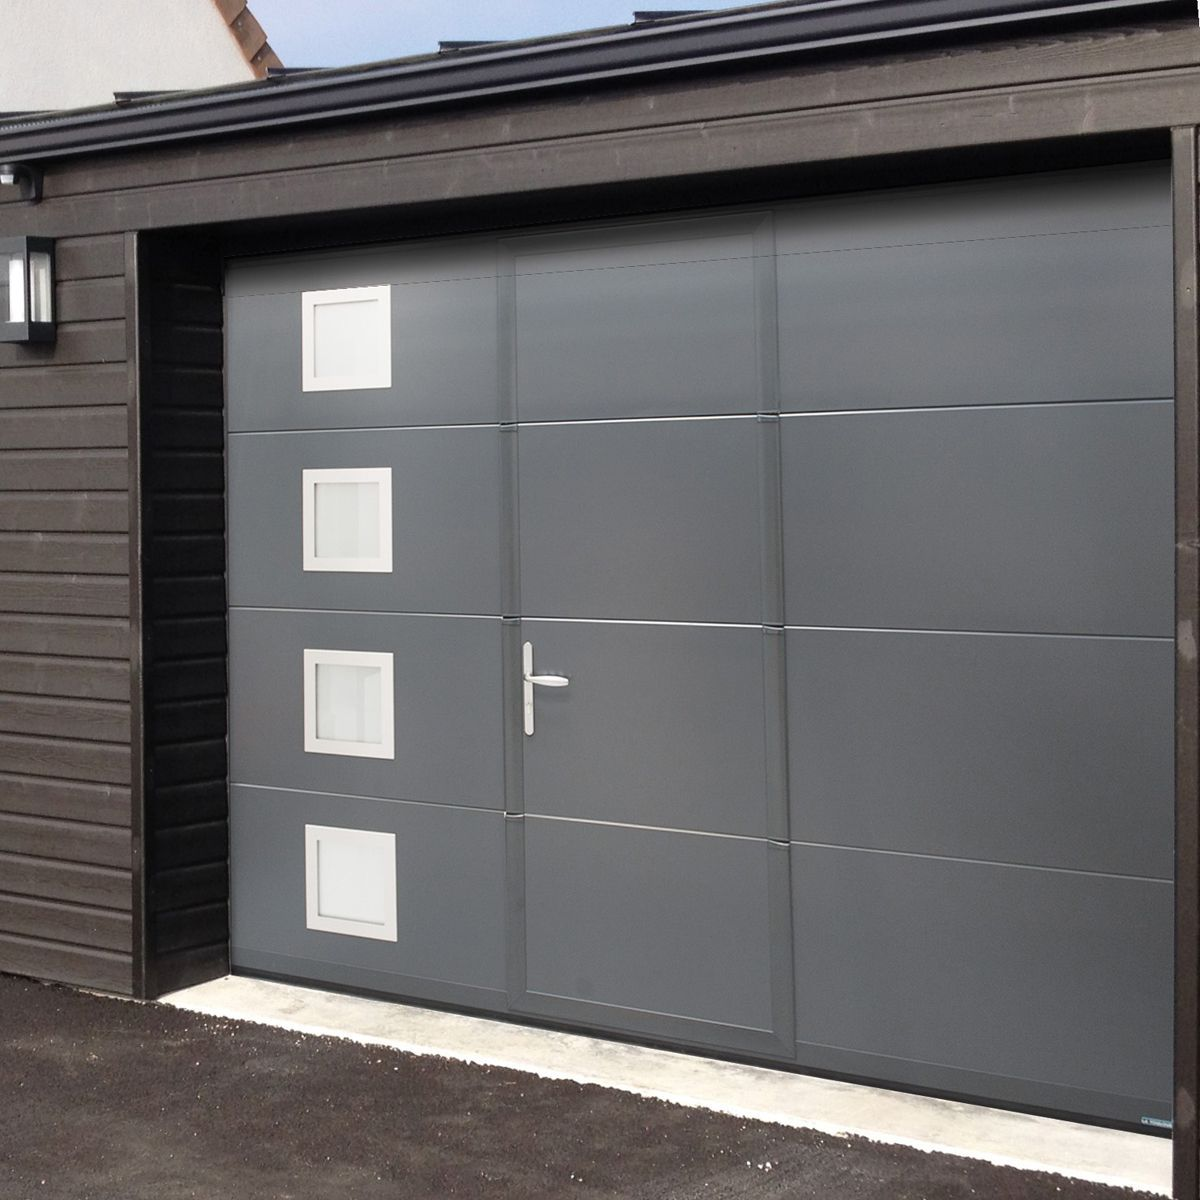 Portes de garage fabriqu es en france sur mesure isoferm for Porte de garage en promotion